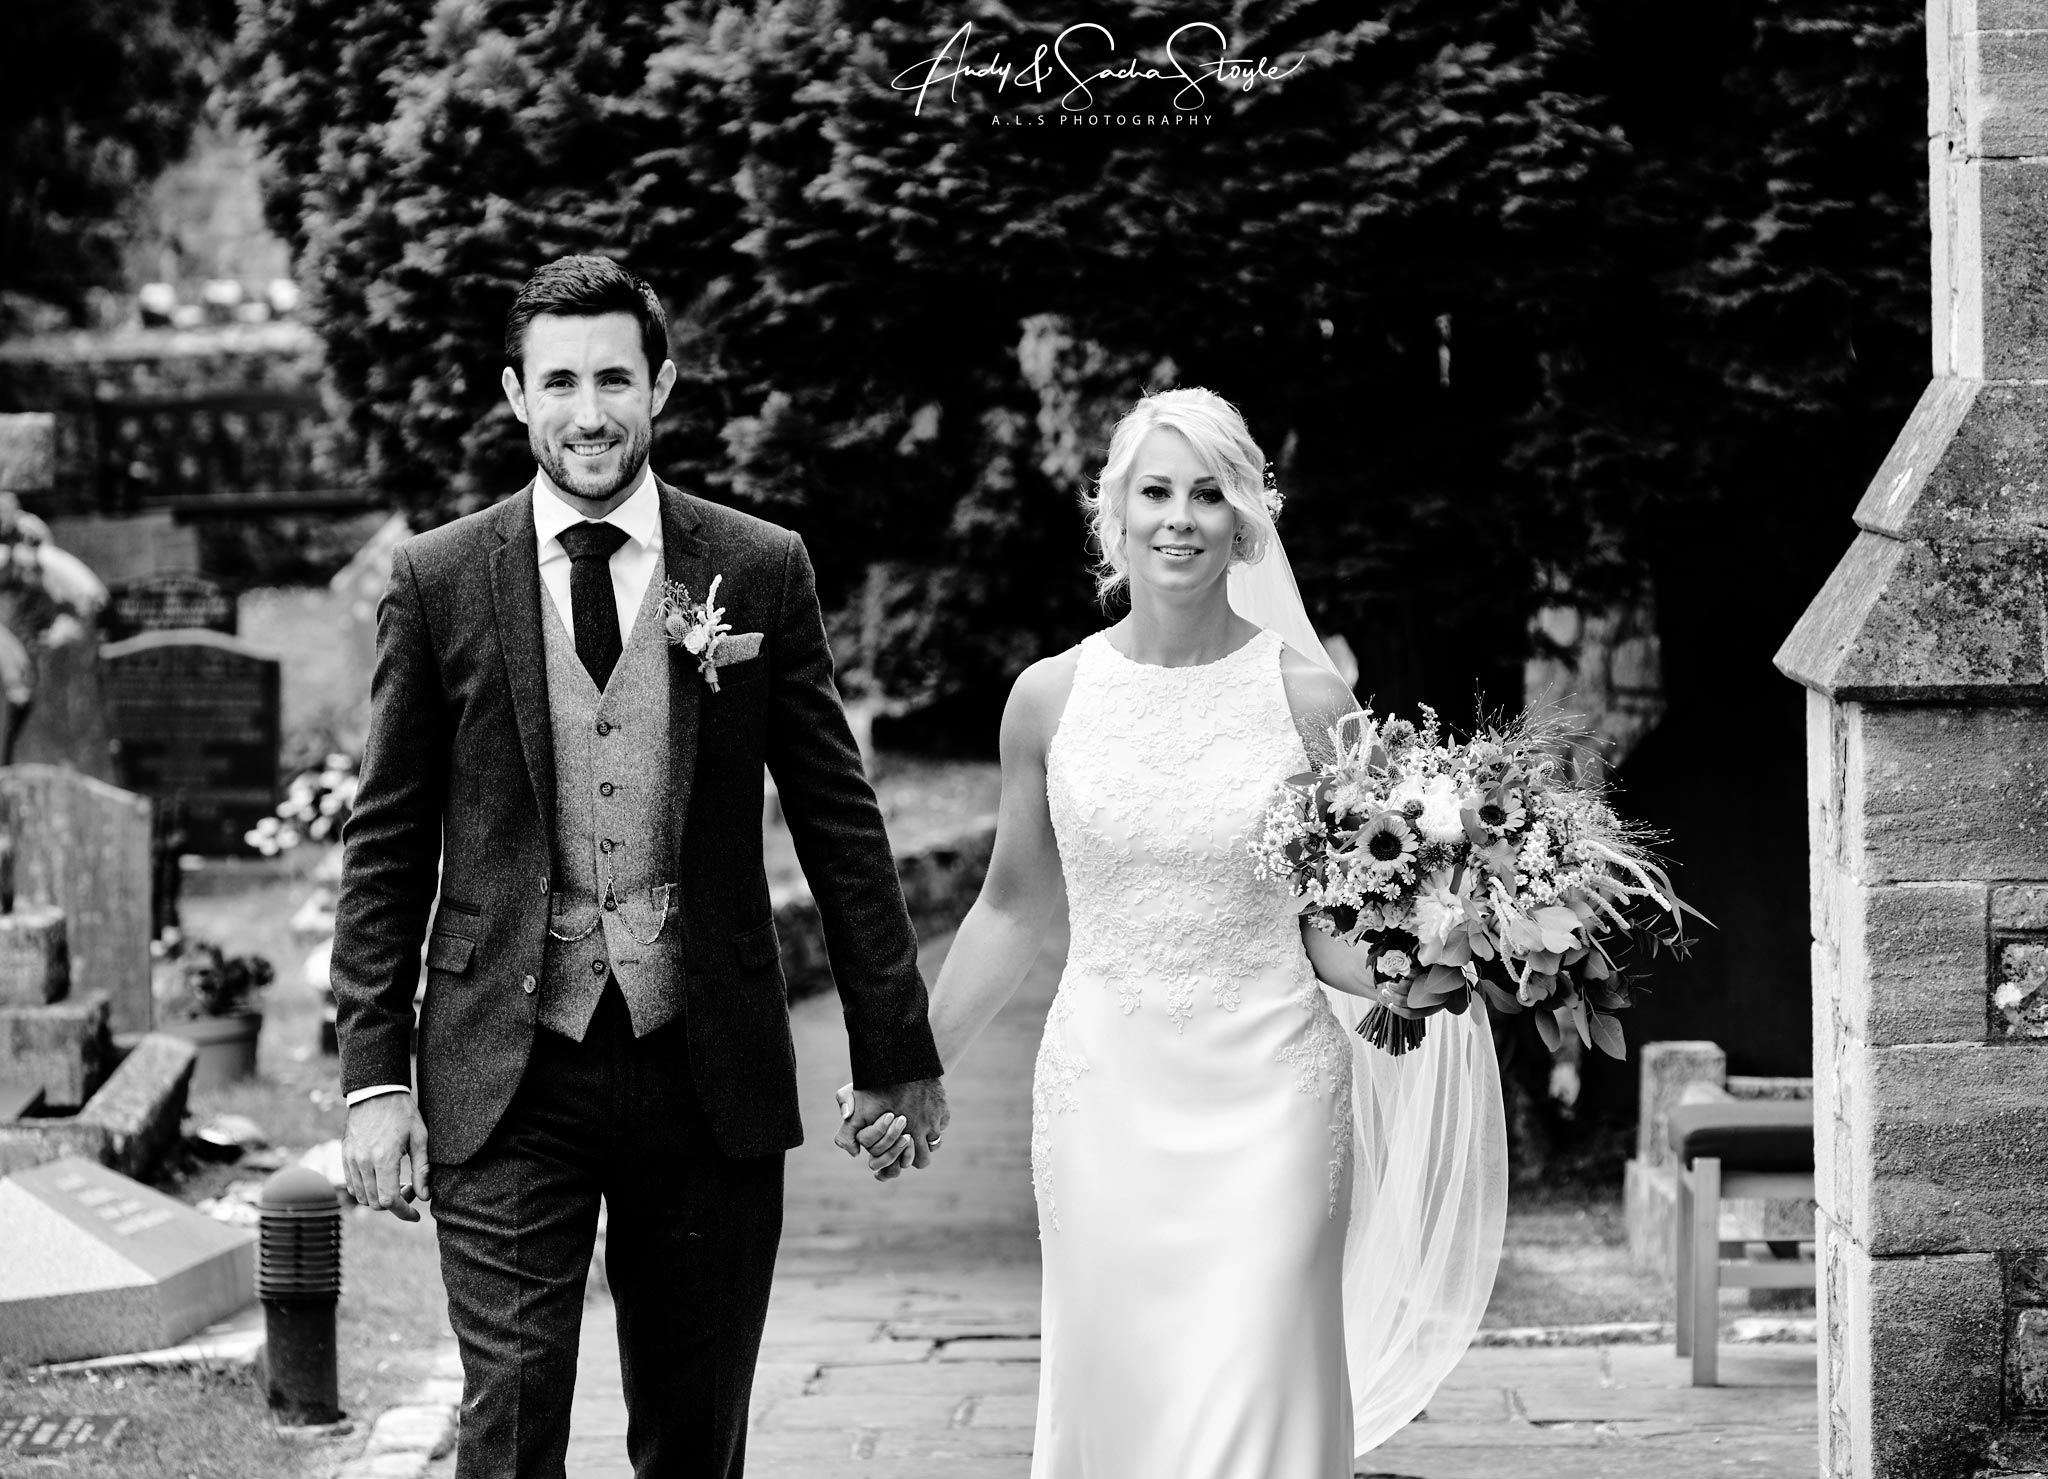 Wedding Photography Llantwit Major